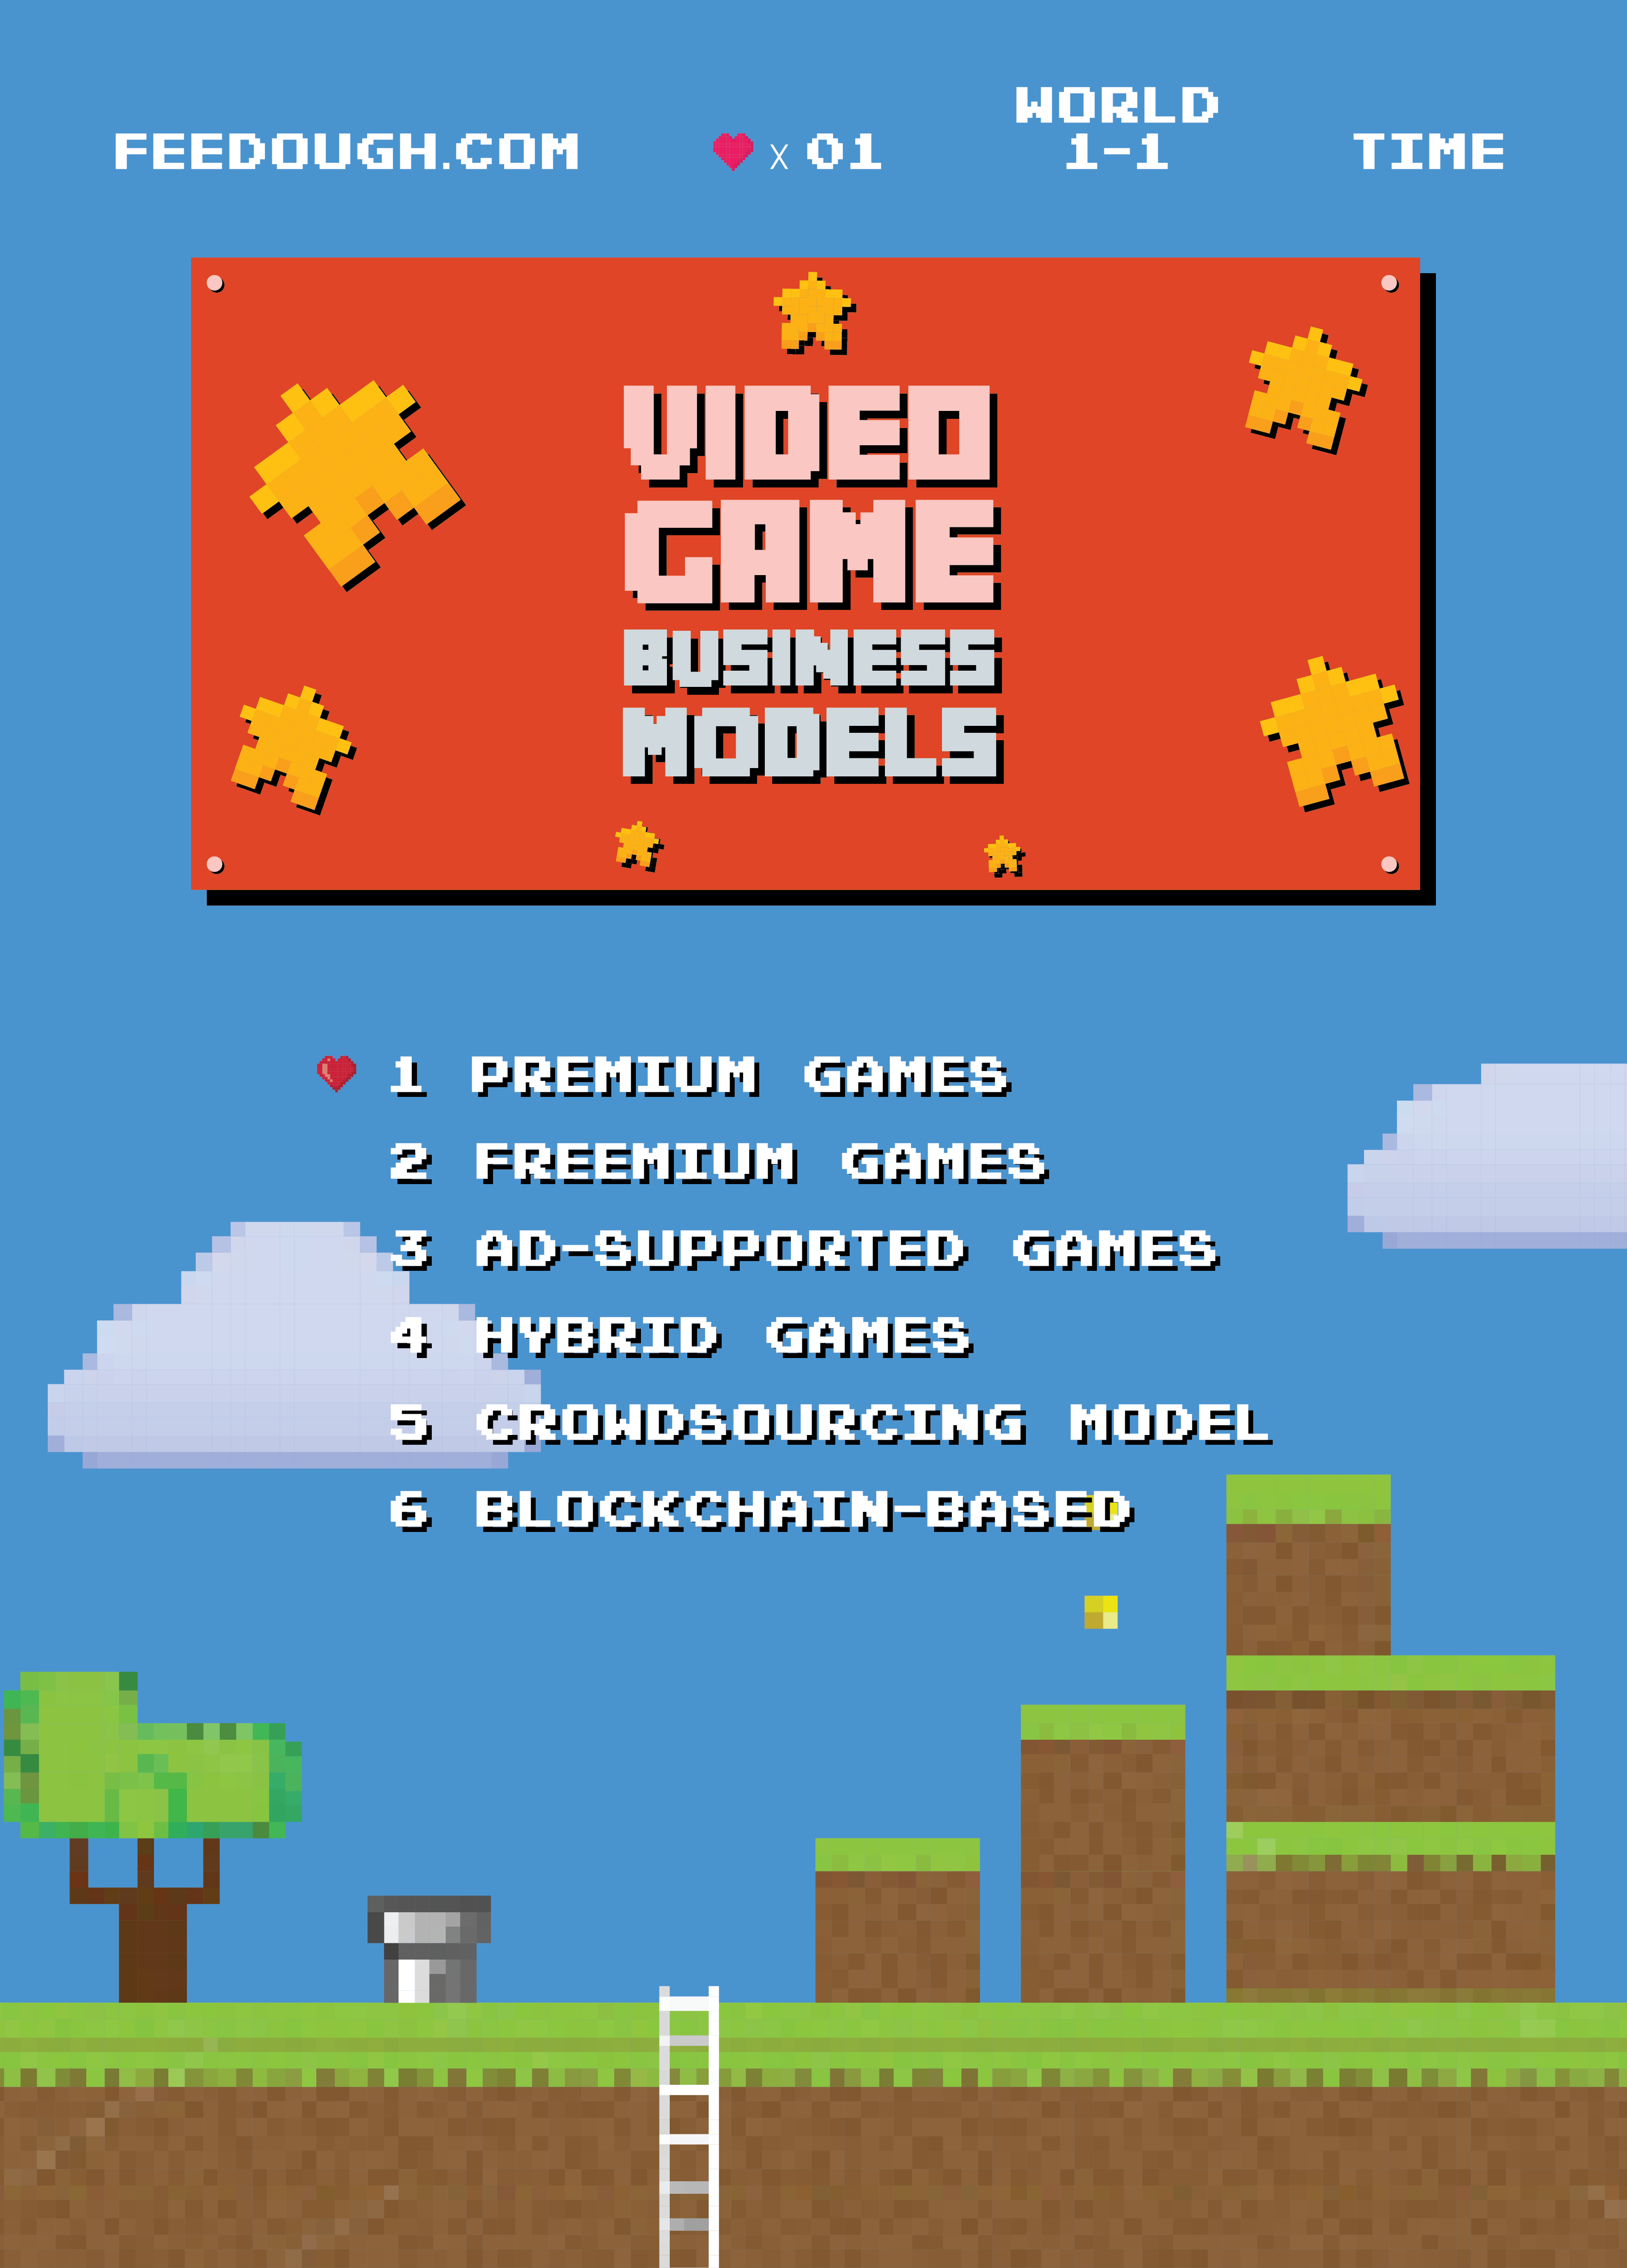 game business models infographic